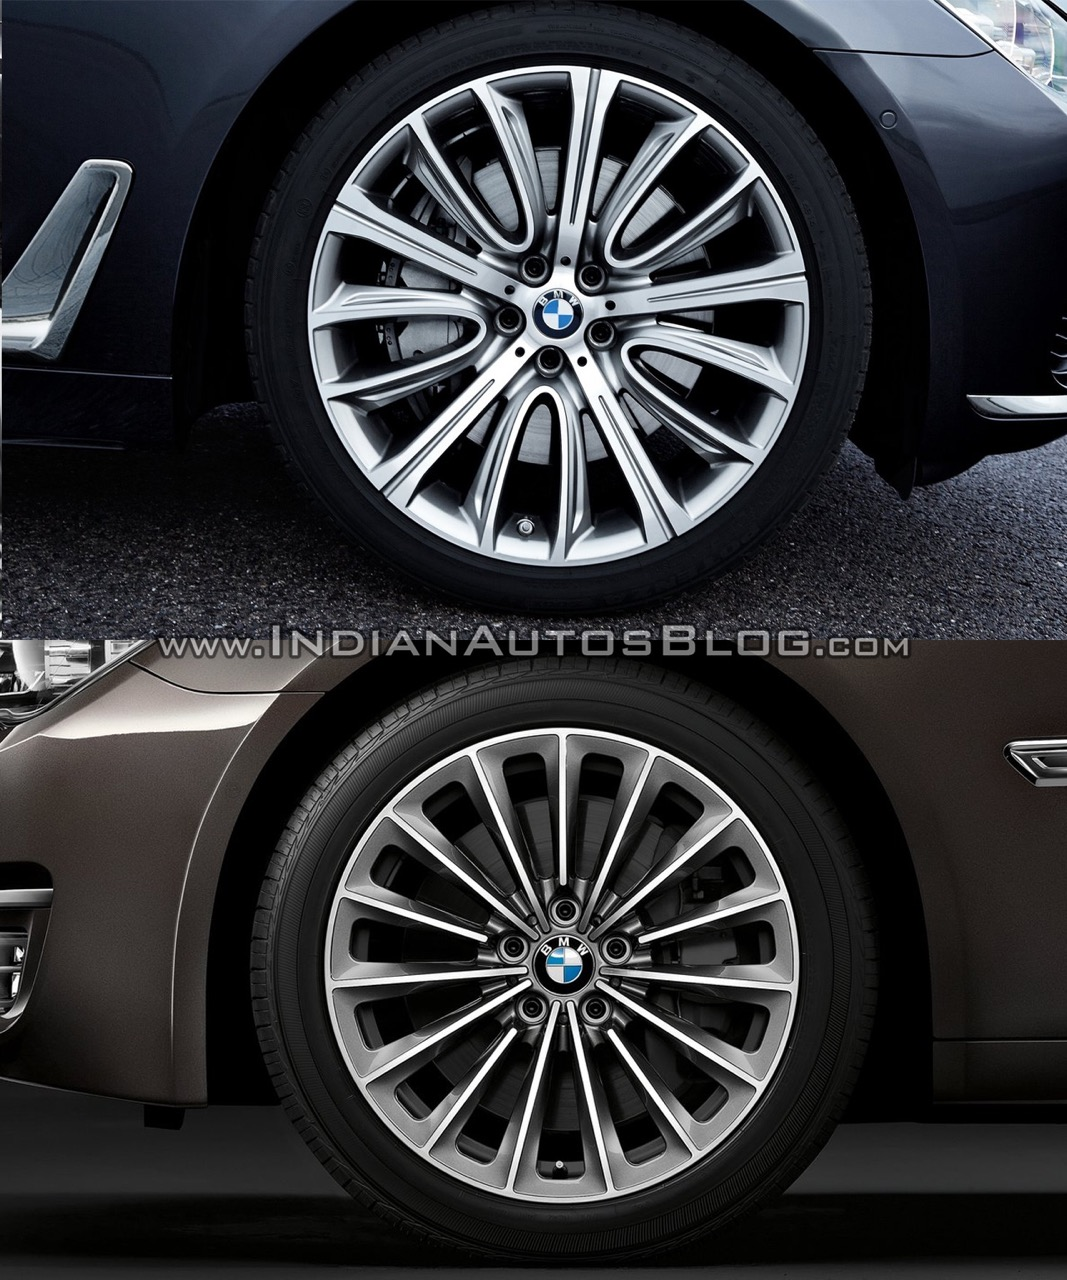 2016 BMW 7 Series vs 2014 BMW 7 Series rims Old vs New